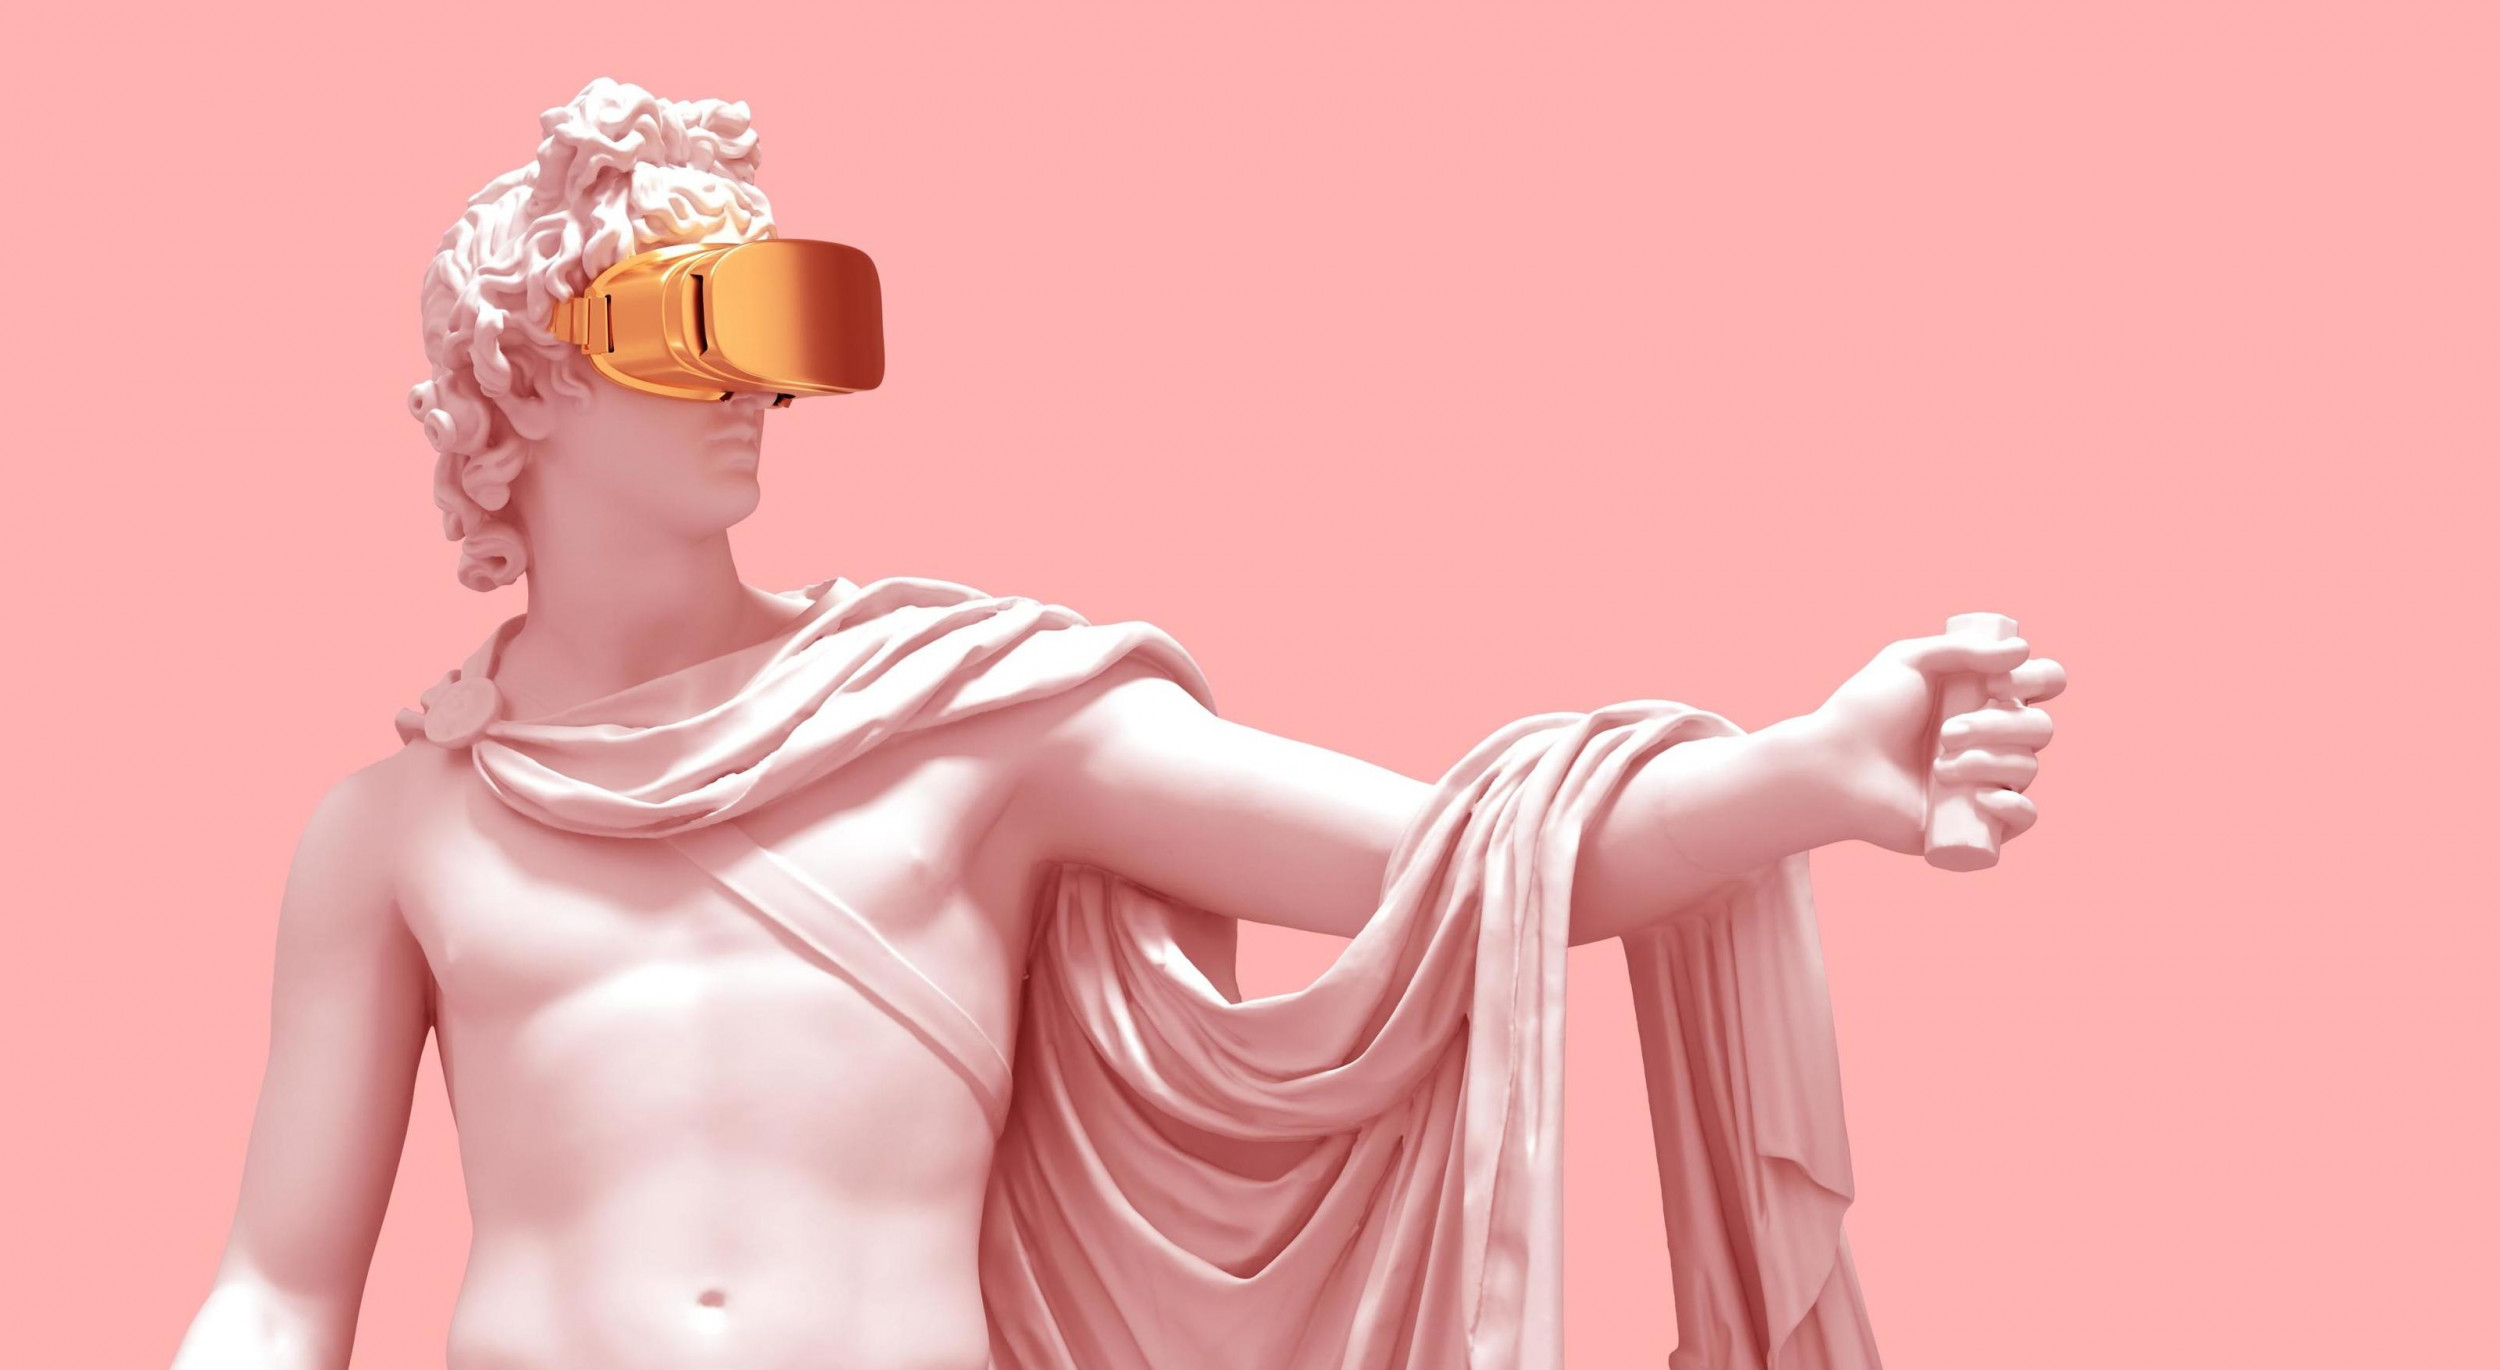 Statue with virtual reality mask on